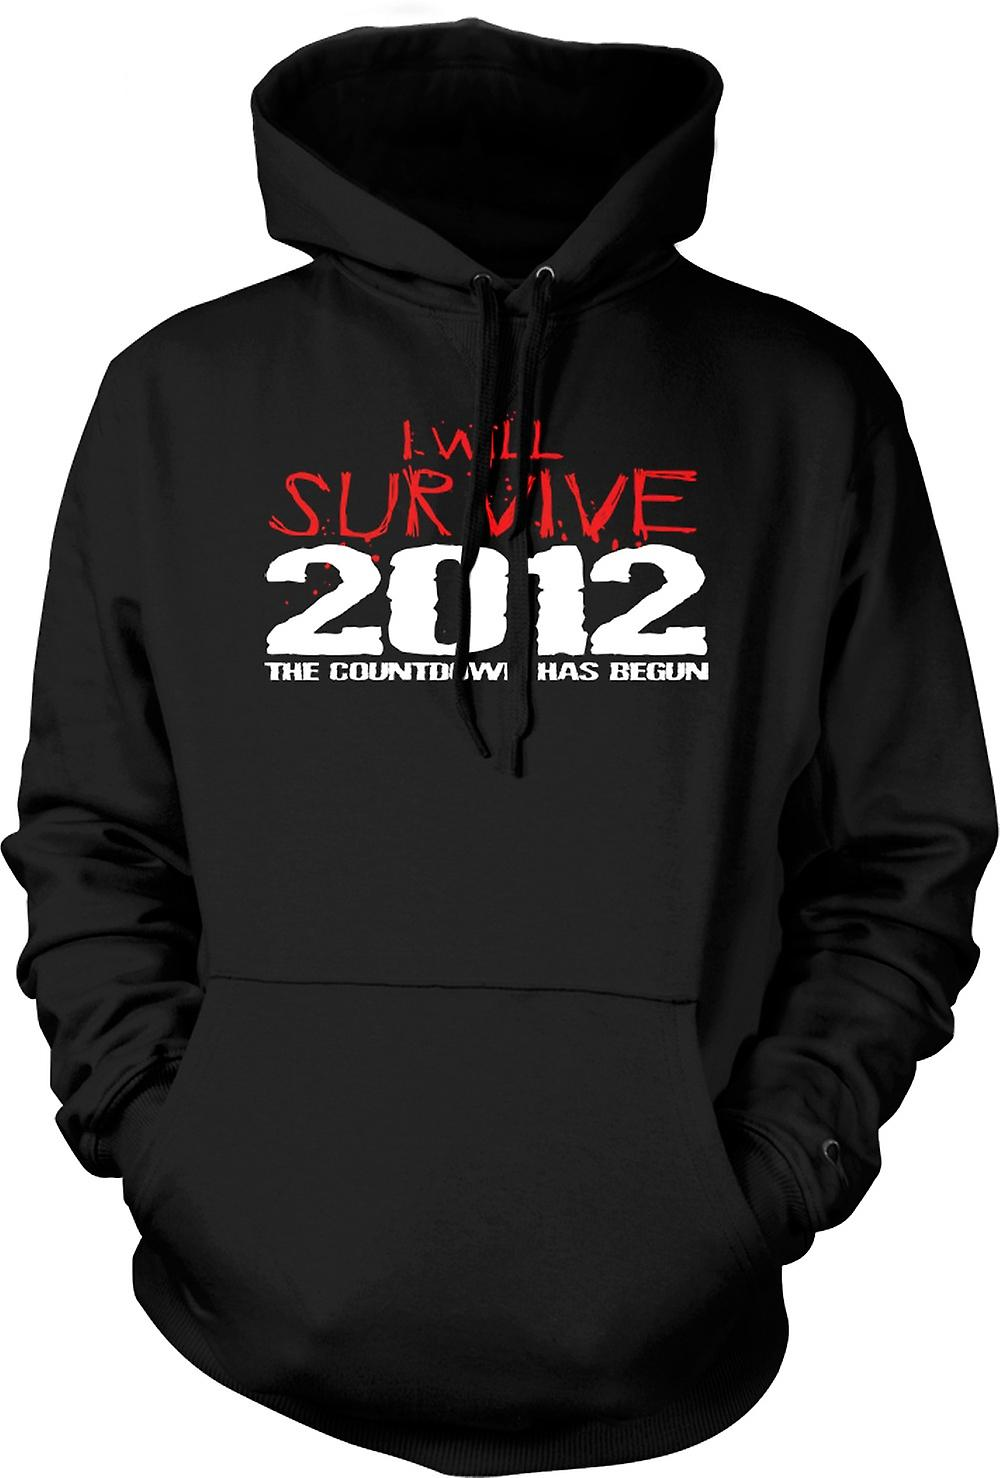 Kids Hoodie - 2012 I Will Survive Apocalypse End Of World